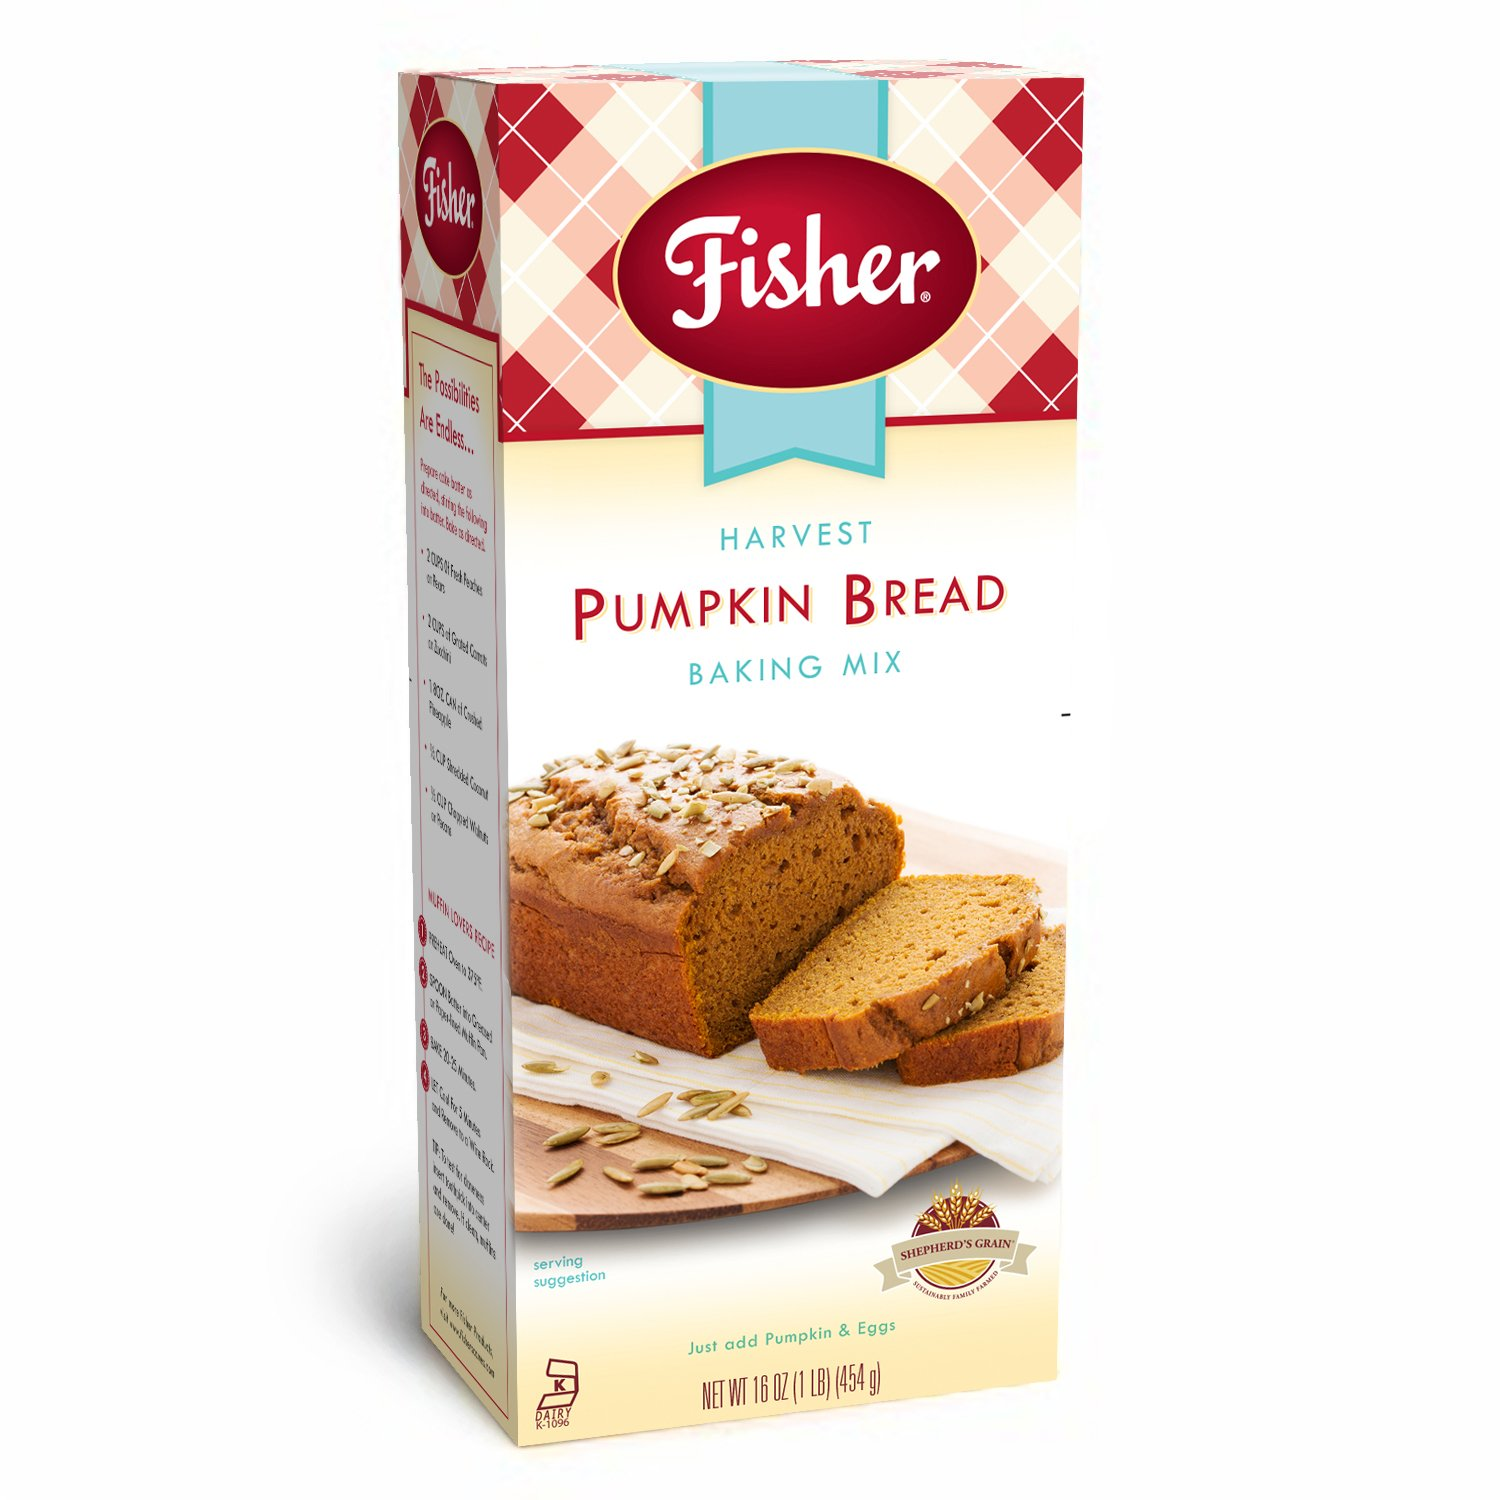 Fisher All Natural Harvest Pumpkin Bread Mix, 18 Ounce Bag, Pack of 3